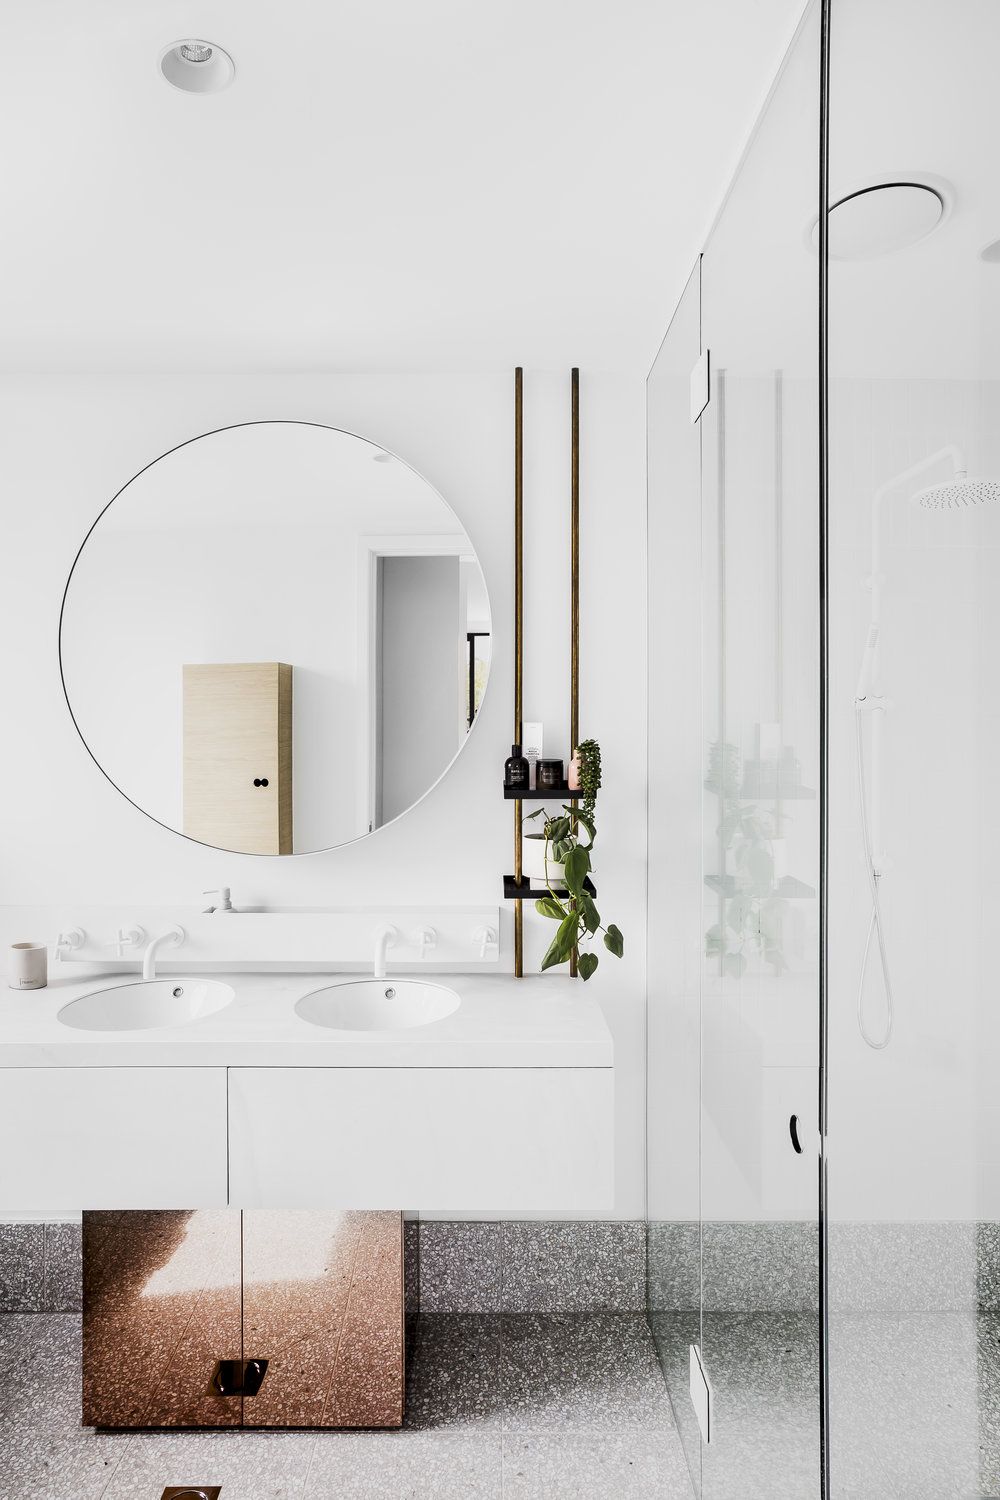 Finishes have aspects of reflectivity and neutrality including white walls, white tiles and light grey terrazzo flooring in the bathrooms. Photo -  Maegan Brown .